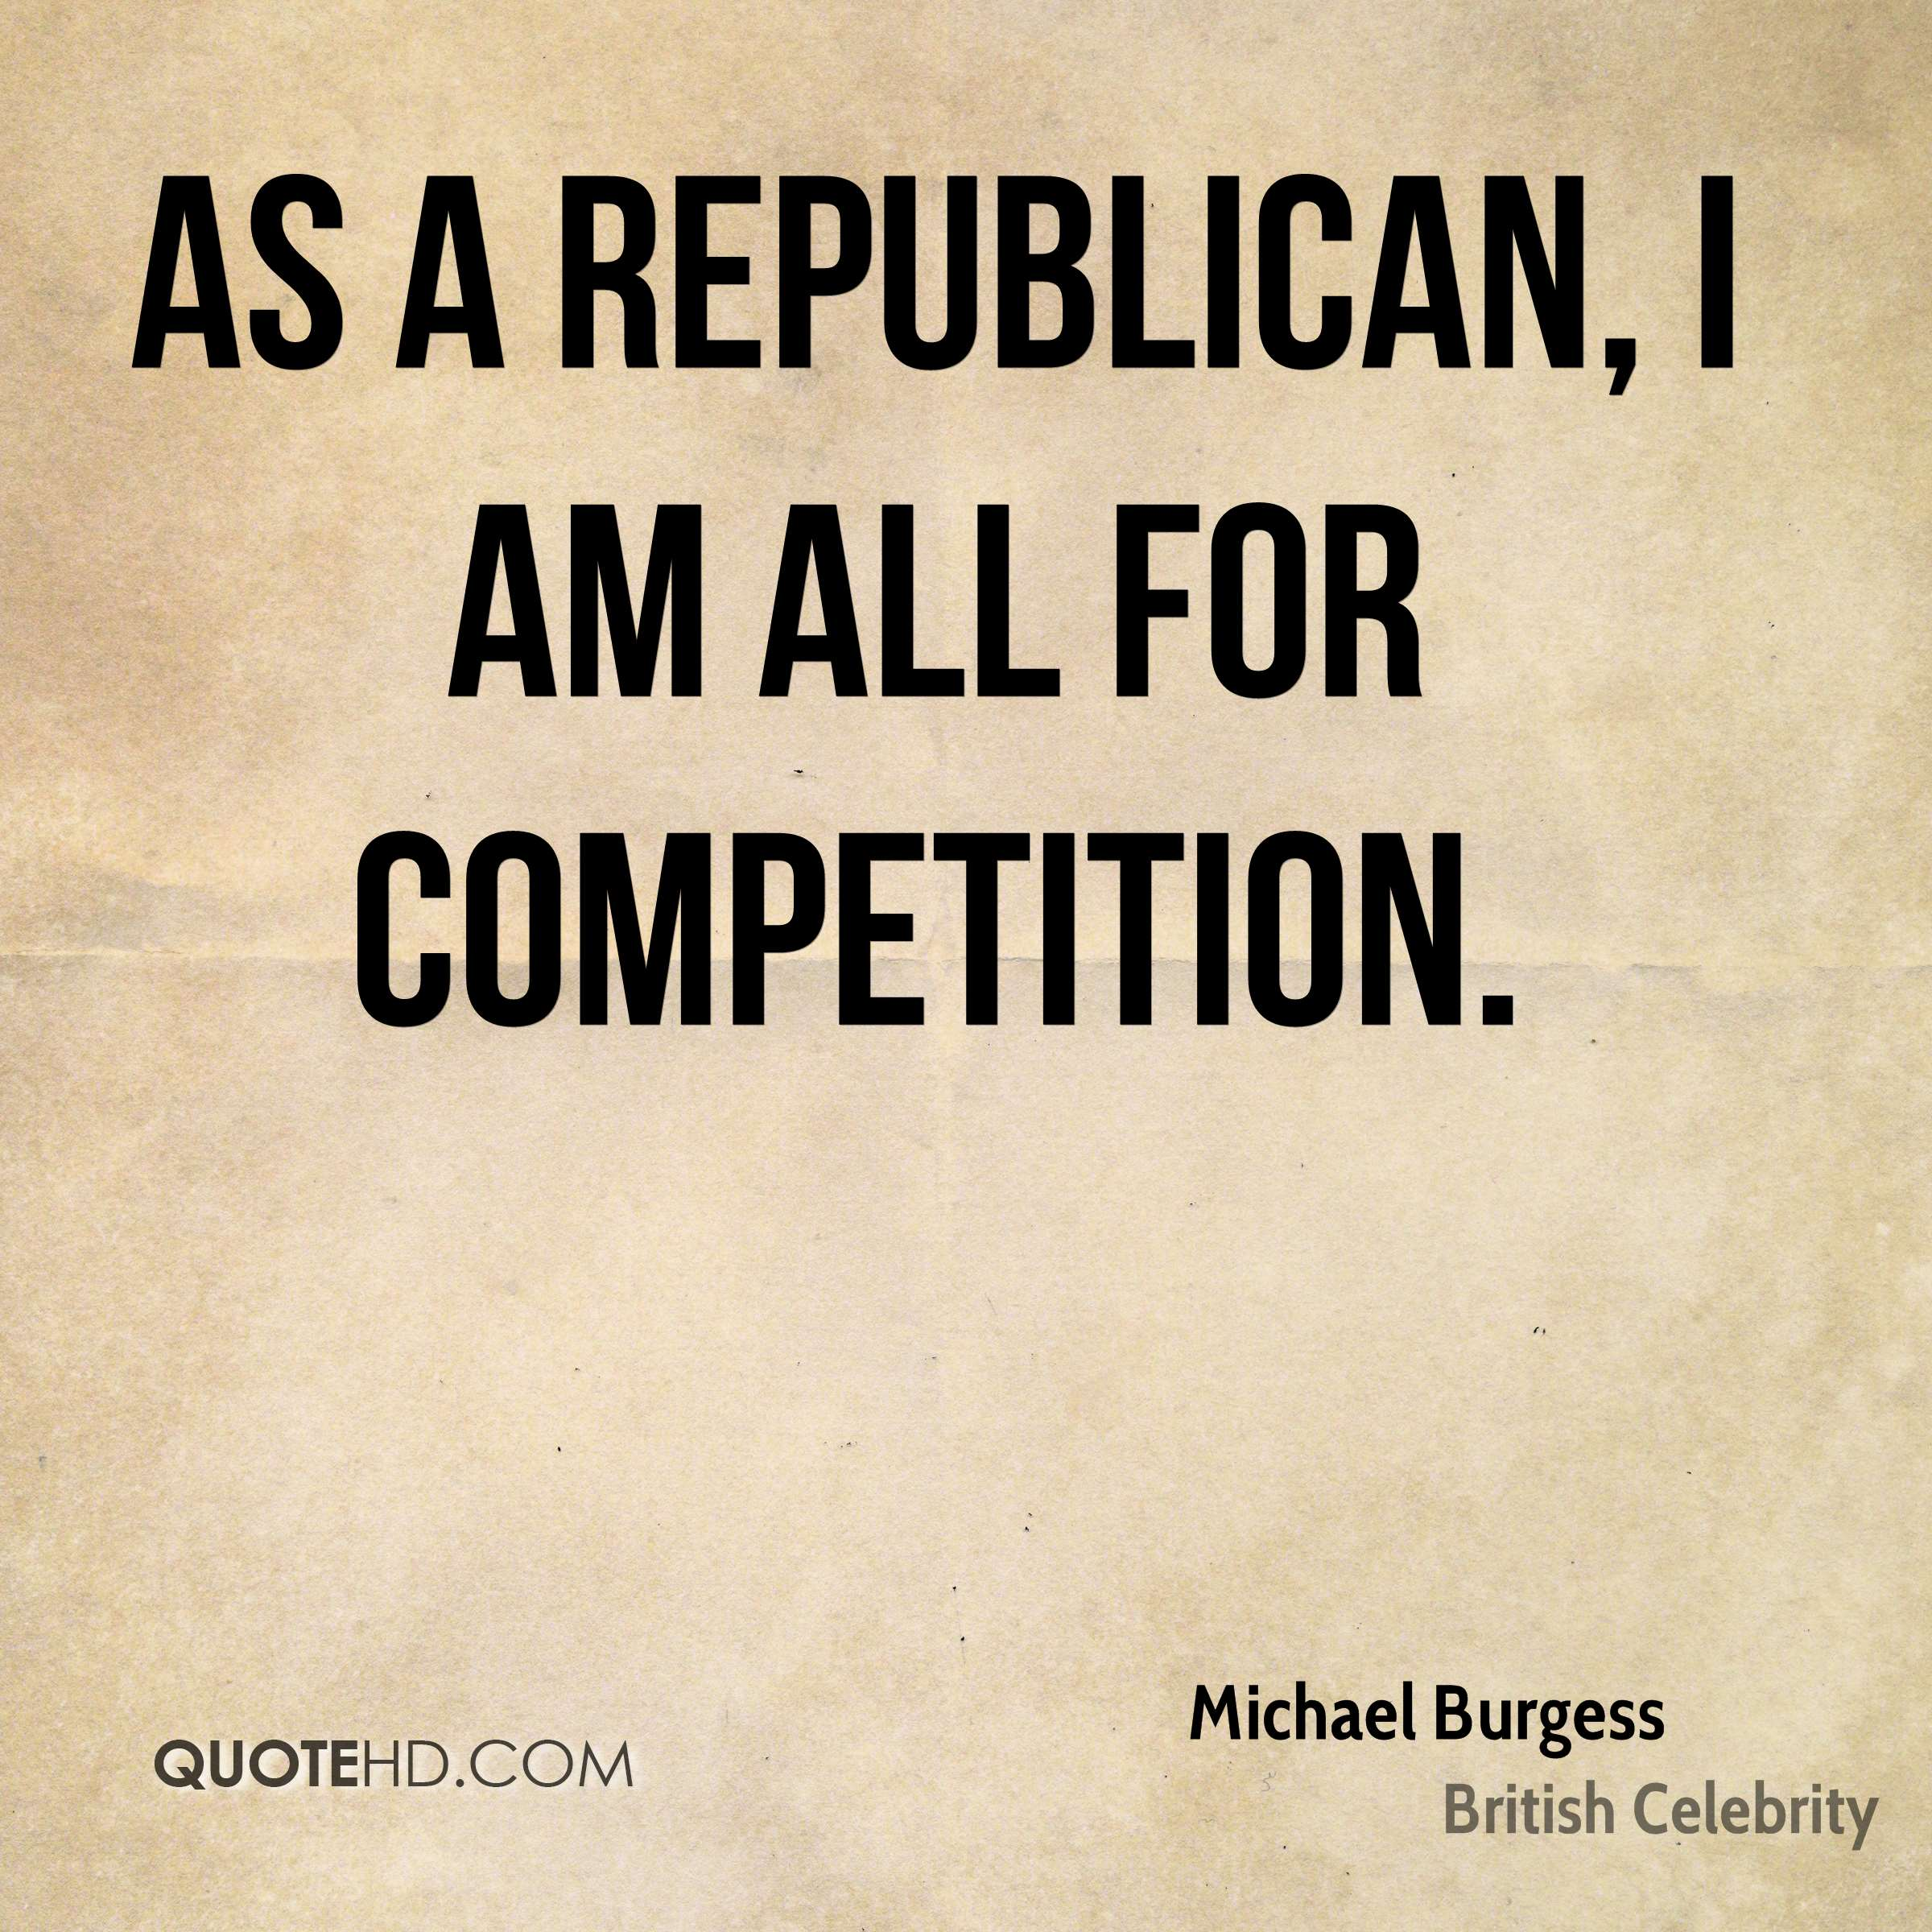 As a Republican, I am all for competition.